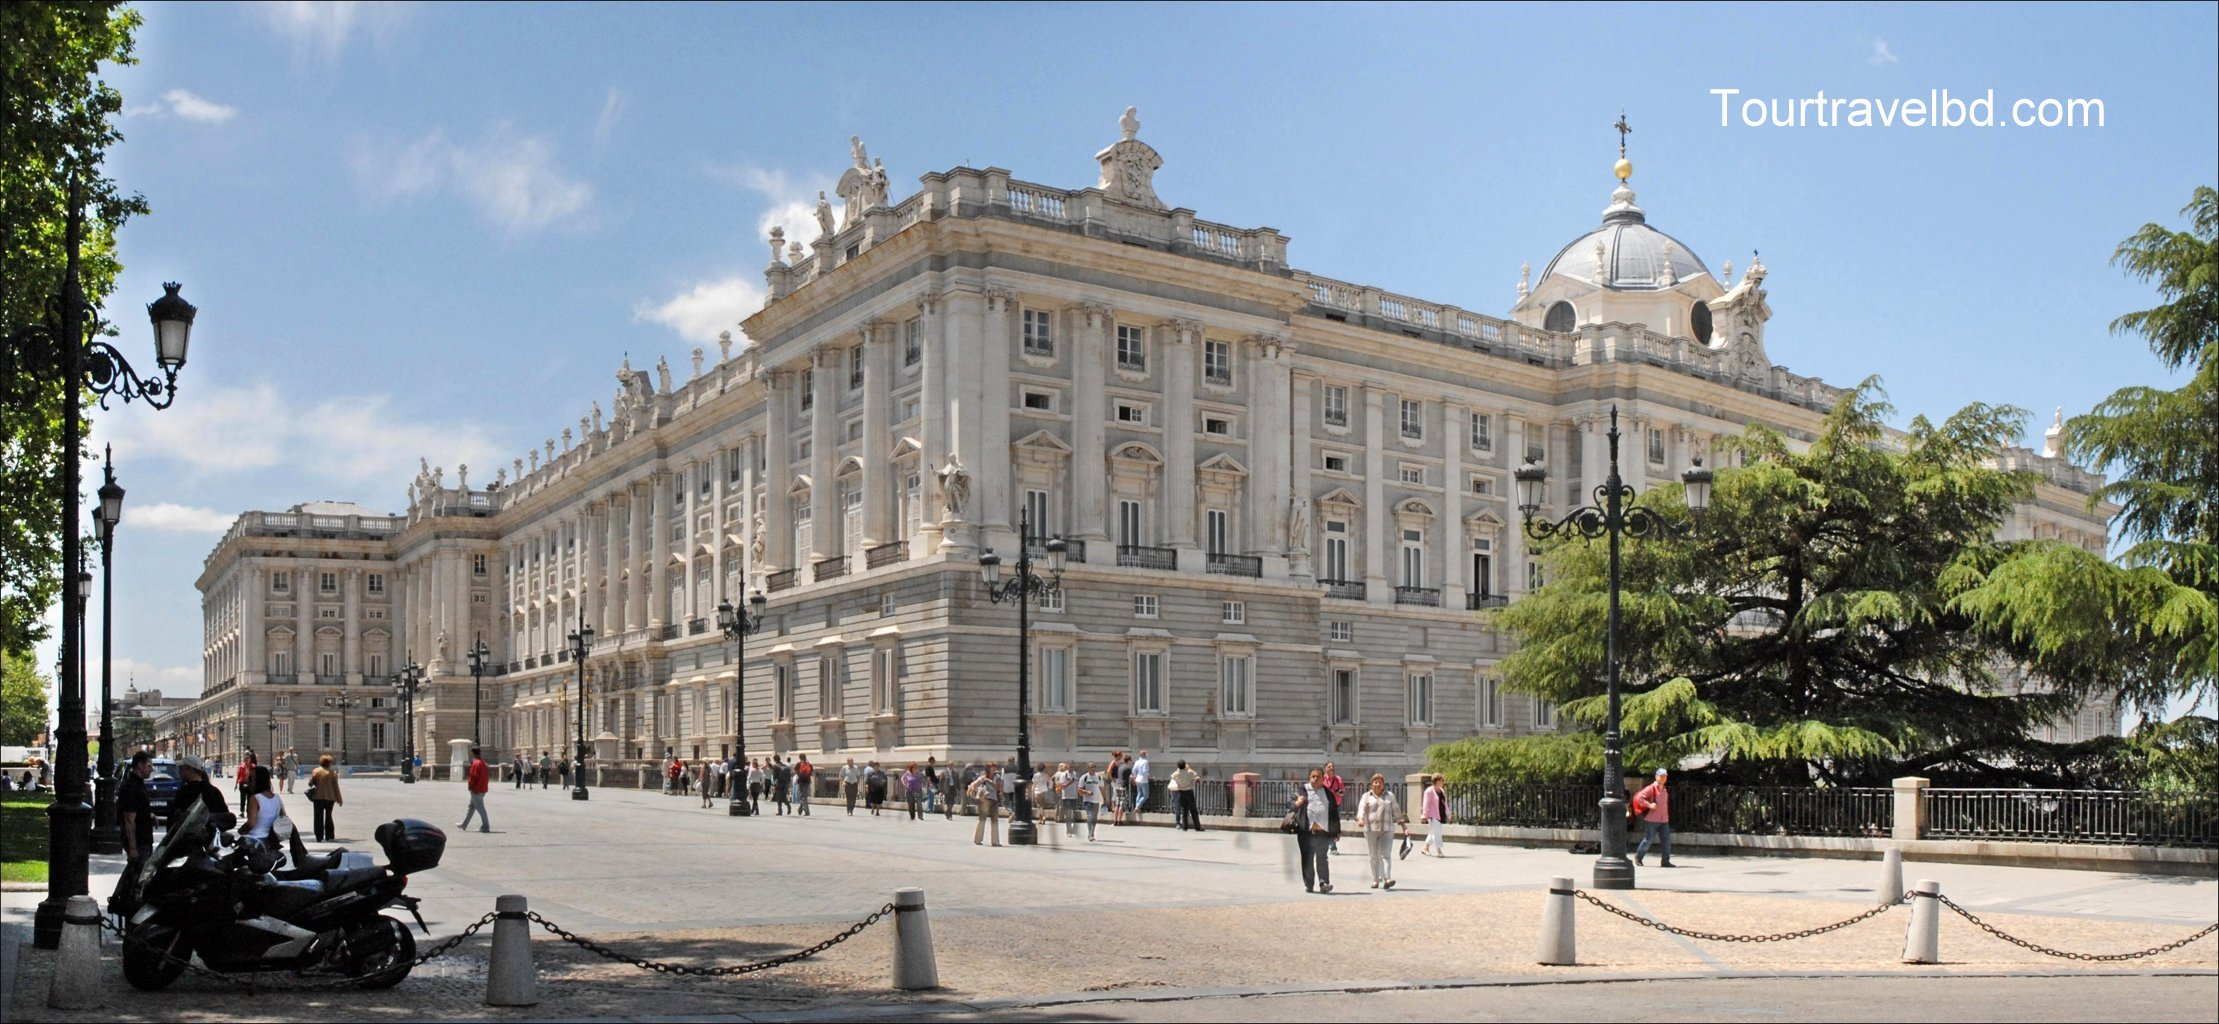 Palacio_Real_(Madrid)_17